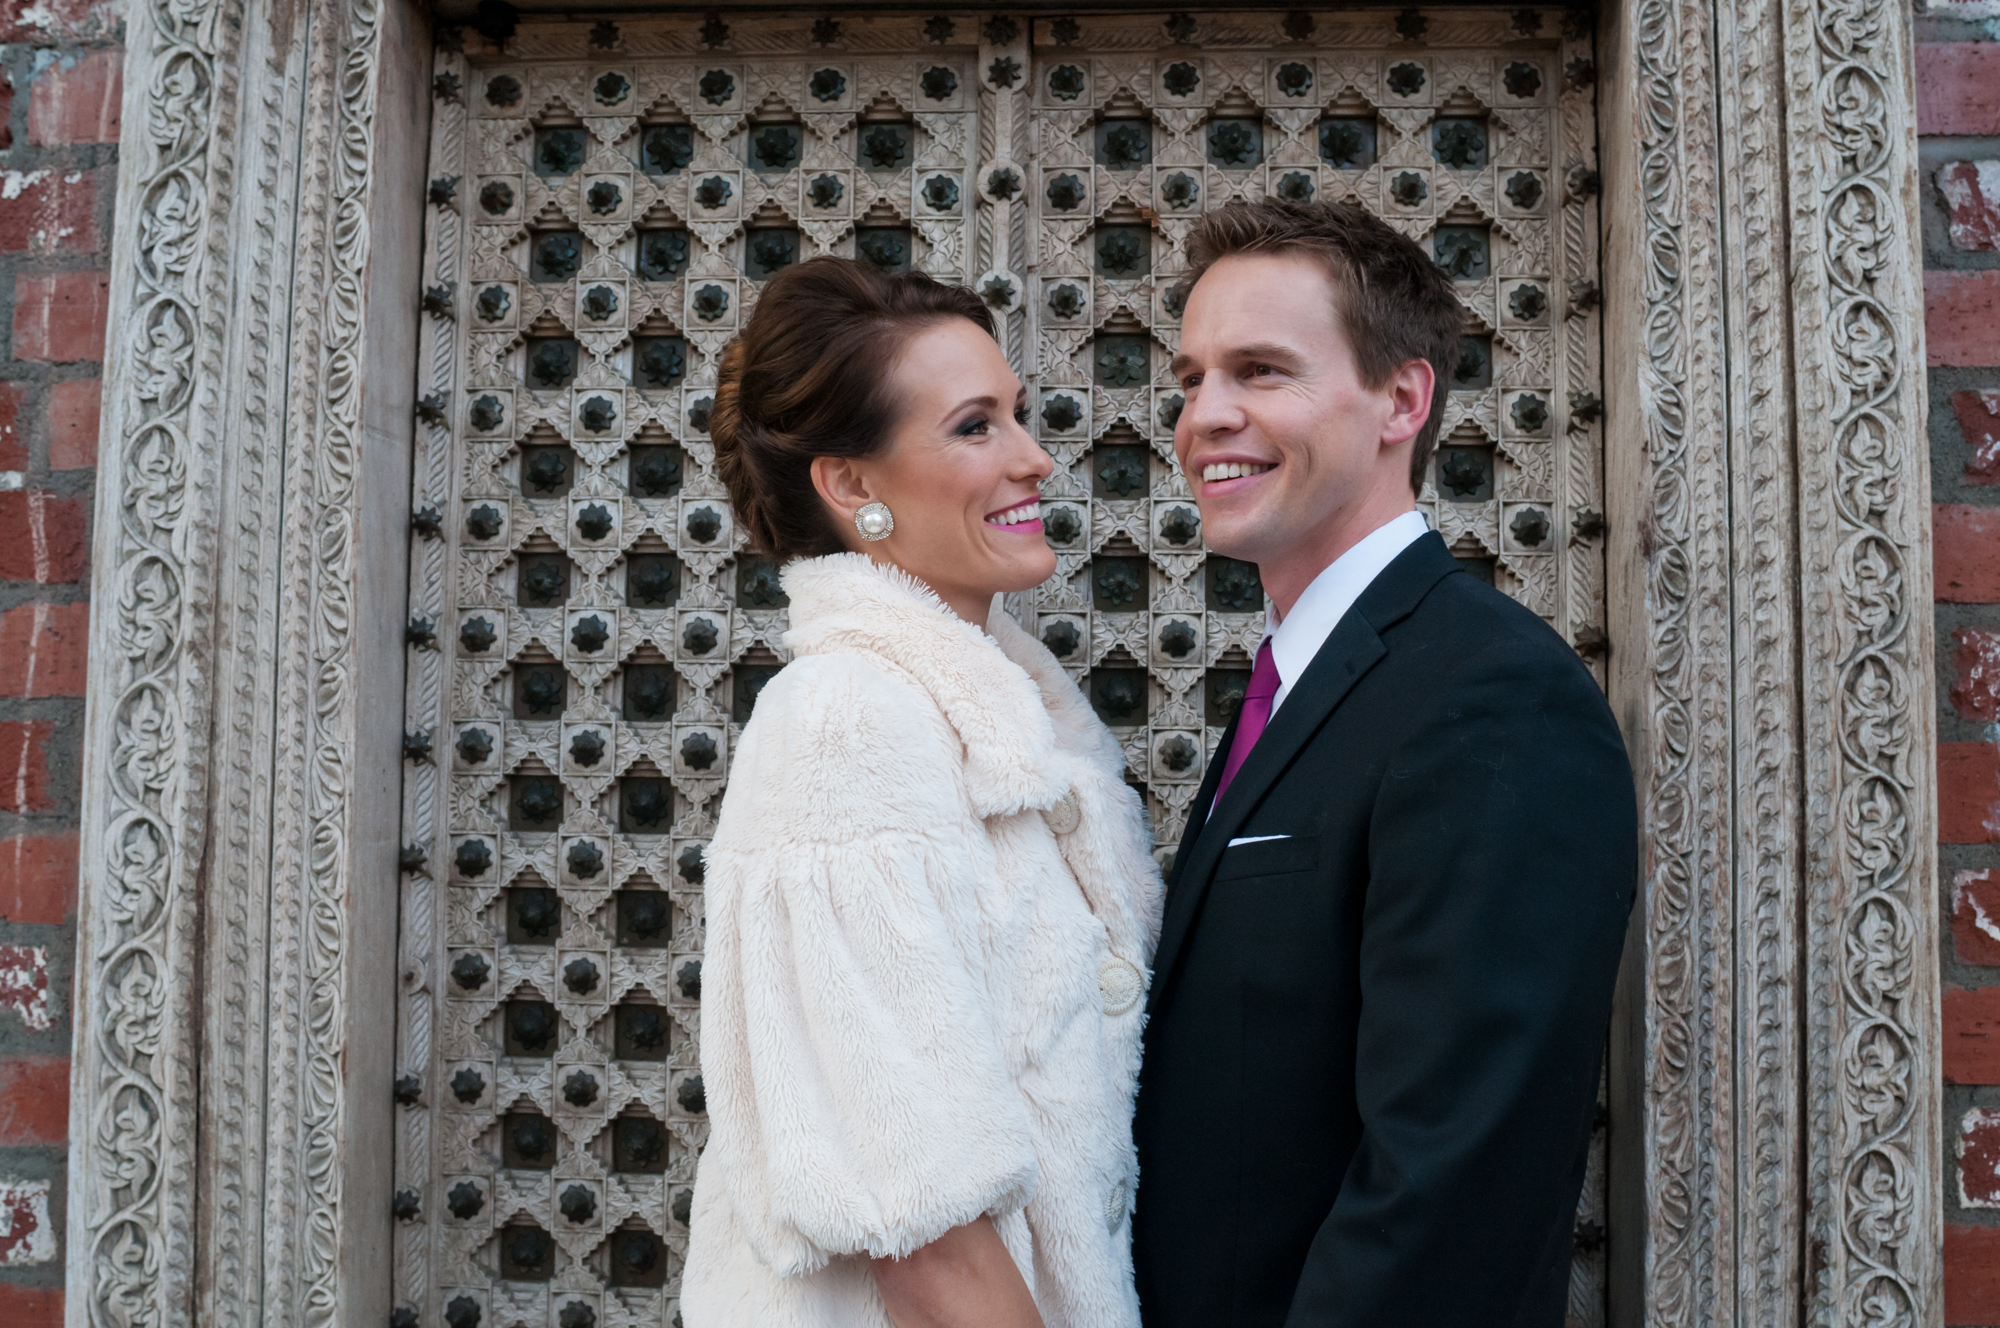 This typical South Orange County couple decided to have their engagement photos in front of a gorgeous iron door located in downtown Laguna Beach. The woman is wearing a vintage furry overcoat while the man has opted for a classic black suit with purple tie, matching the woman's lipstick.